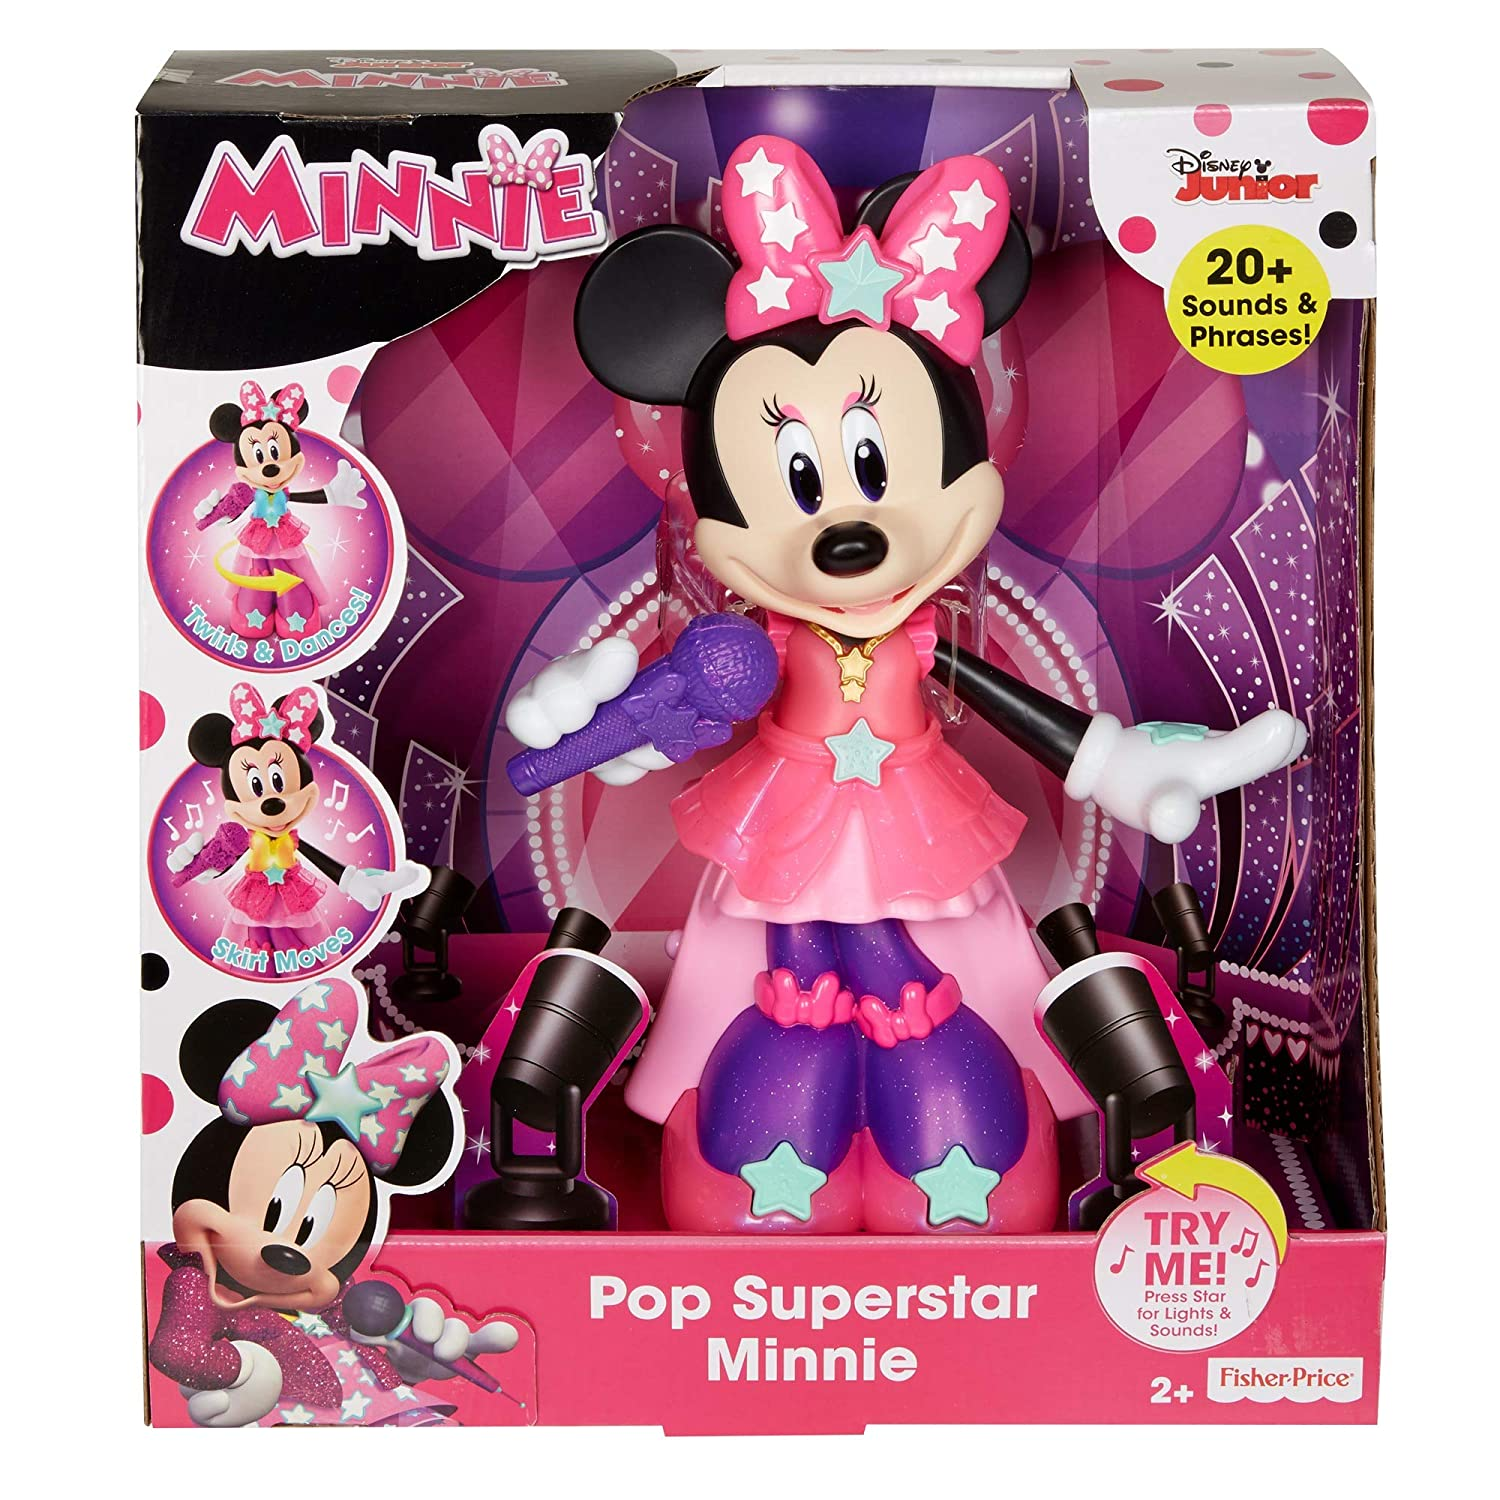 Amazon.com: Fisher-Price Disney Minnie, Pop Superstar Minnie: Toys & Games